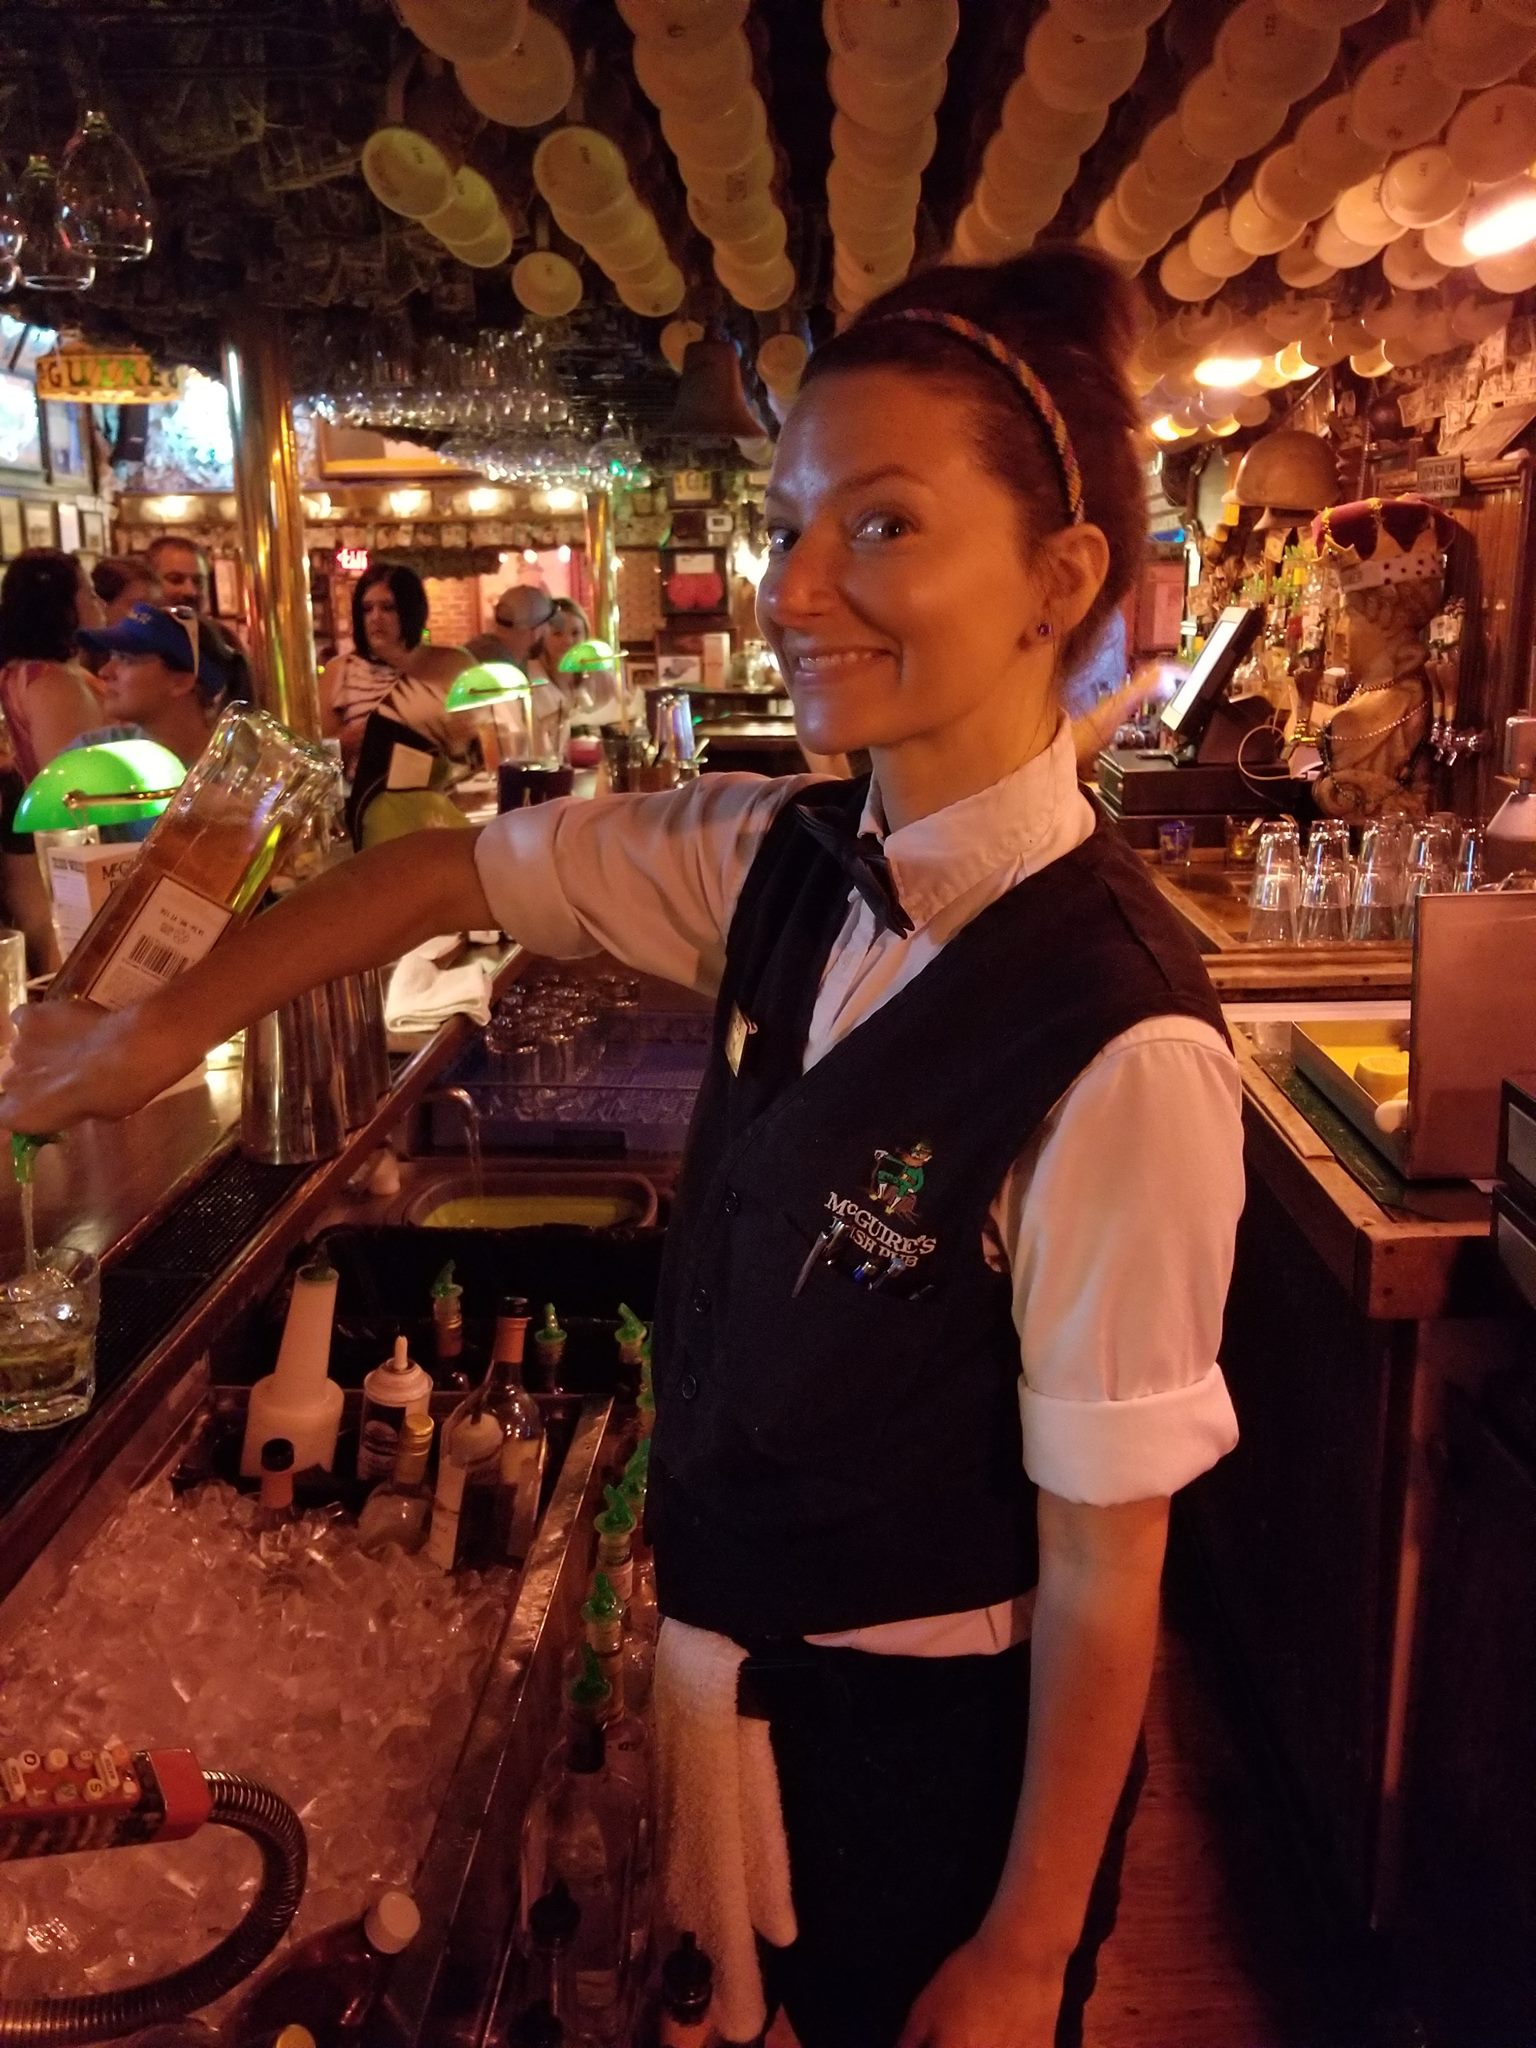 McGuire's Warm and Friendly Bartender